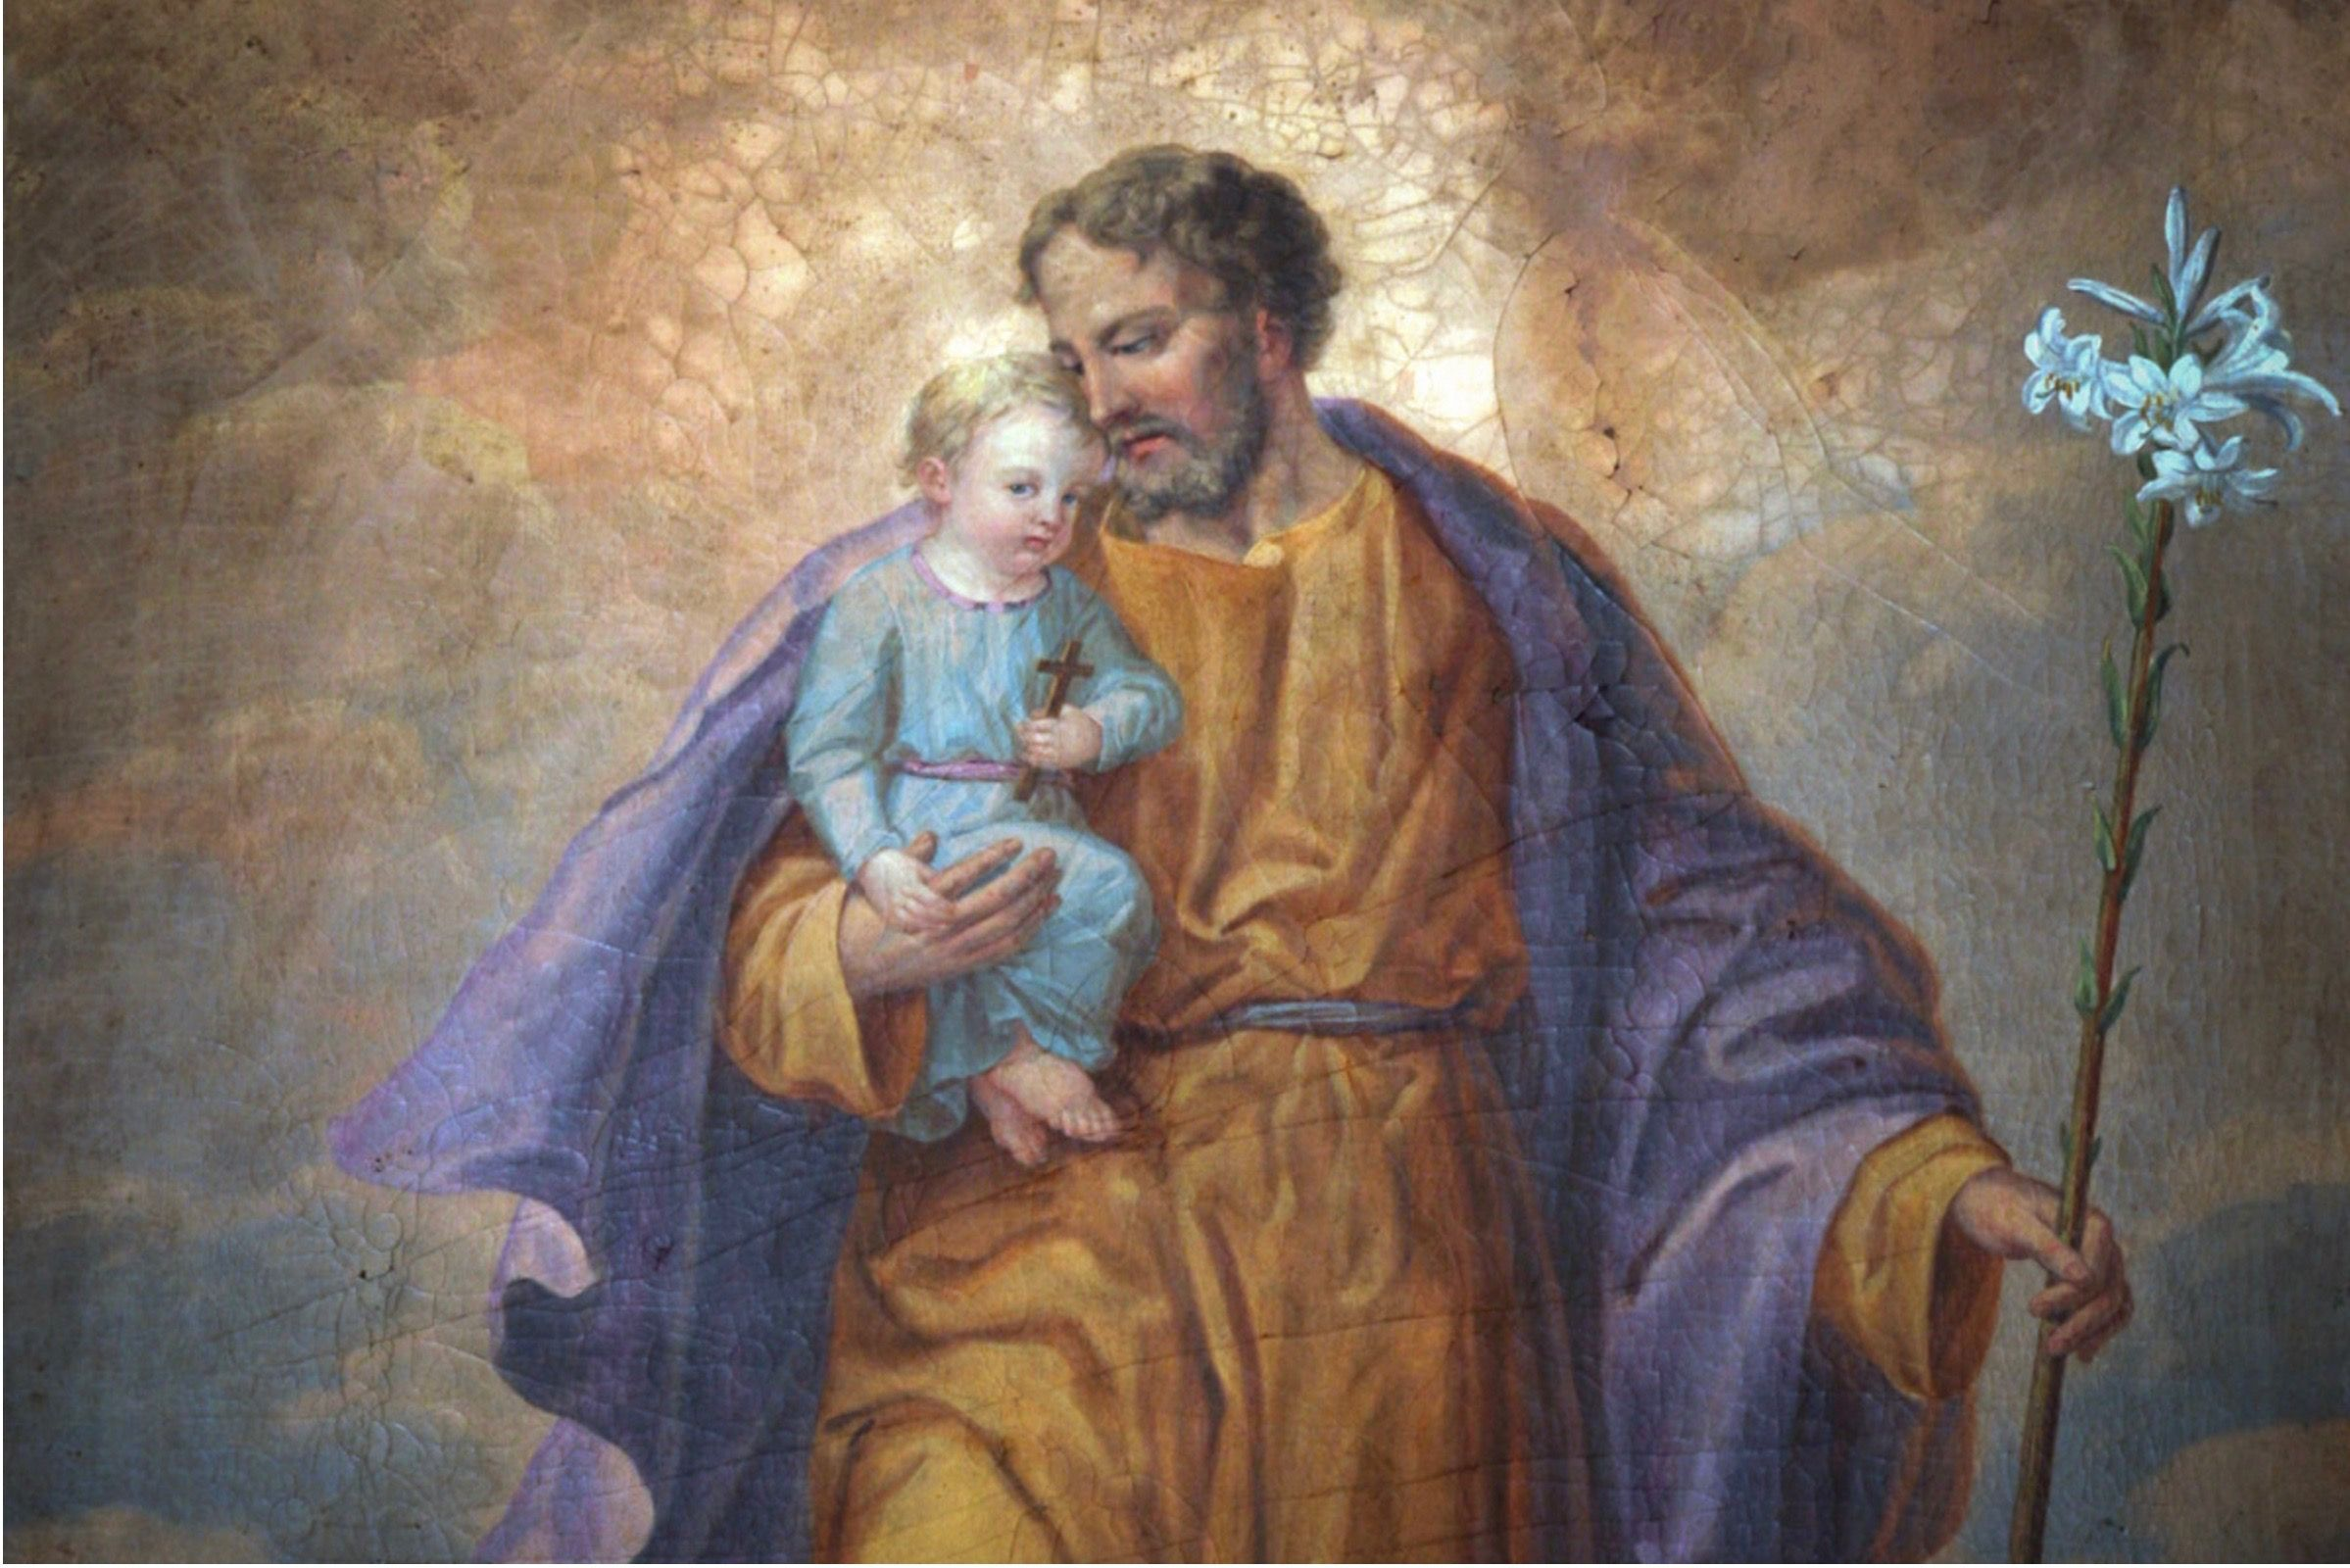 Prayer of Consecration to St. Joseph